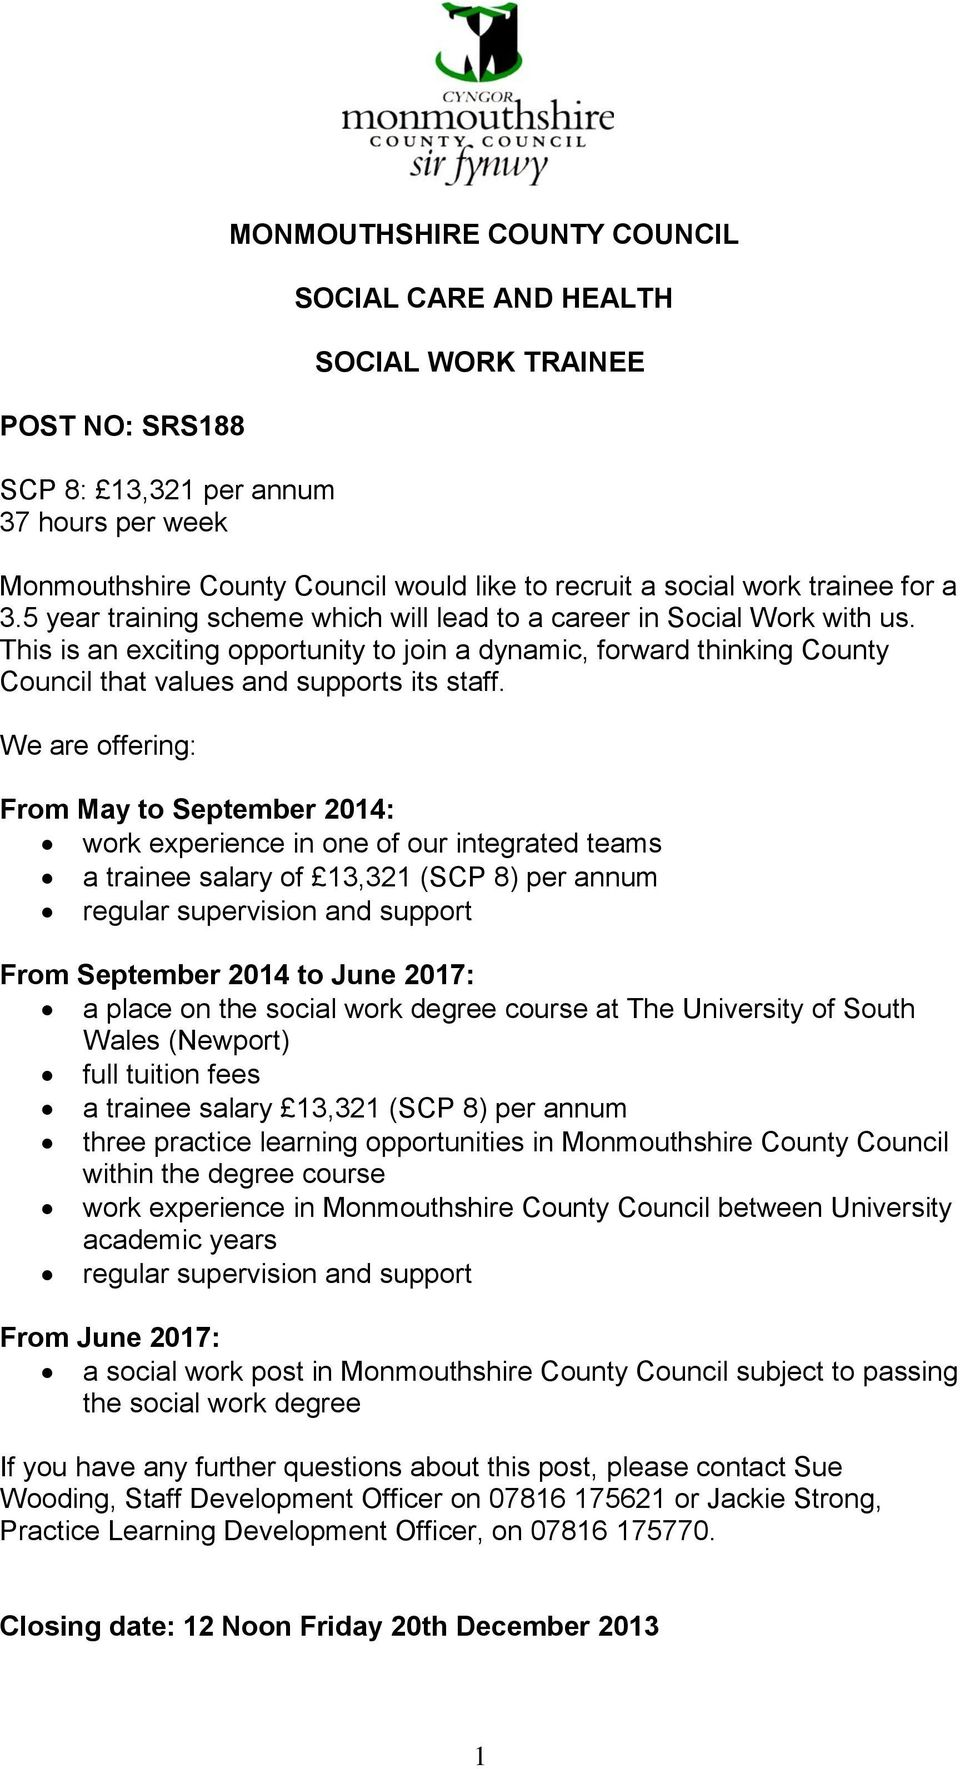 This is an exciting opportunity to join a dynamic, forward thinking County Council that values and supports its staff.